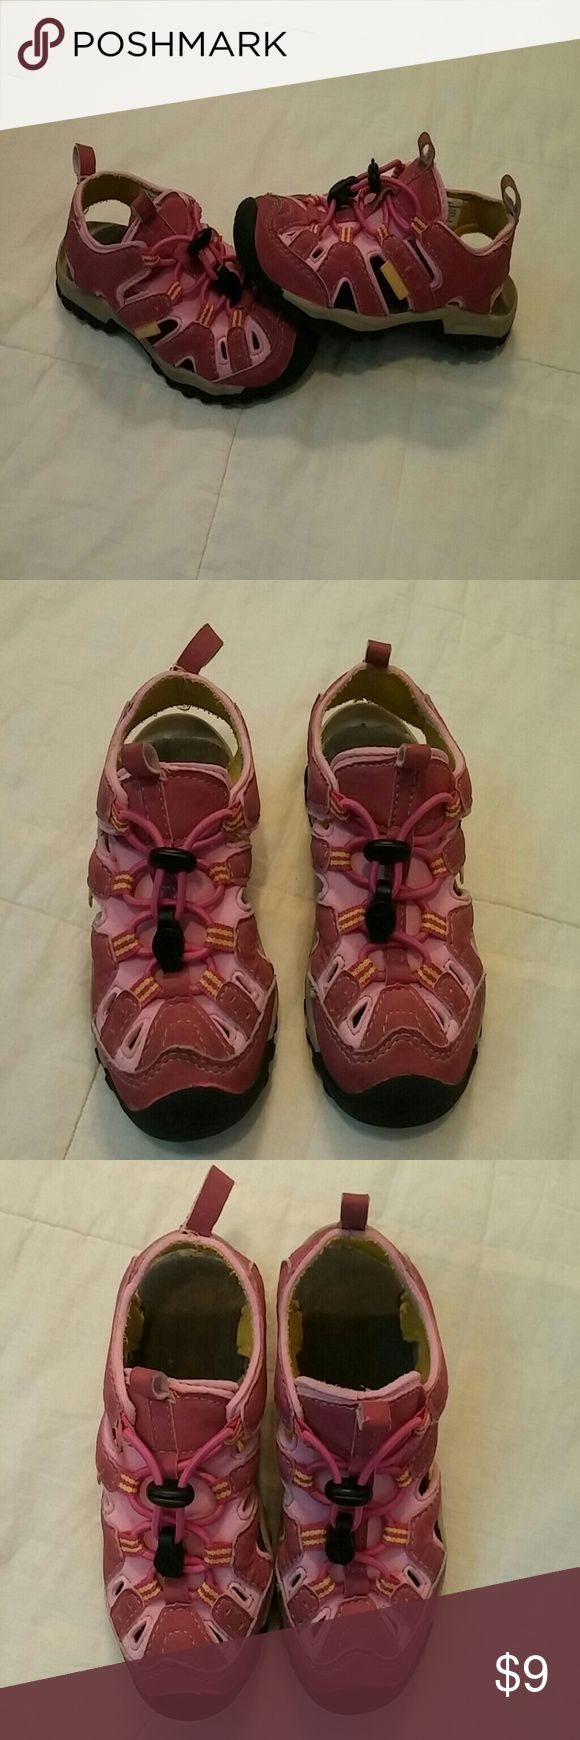 Girls Northside Pull on Sandals Water Shoes Size 9 Girl Northside Pull on Water Shoes or Sandals size 9. Very Nice Condition. Non smoking Home Northside Shoes Water Shoes